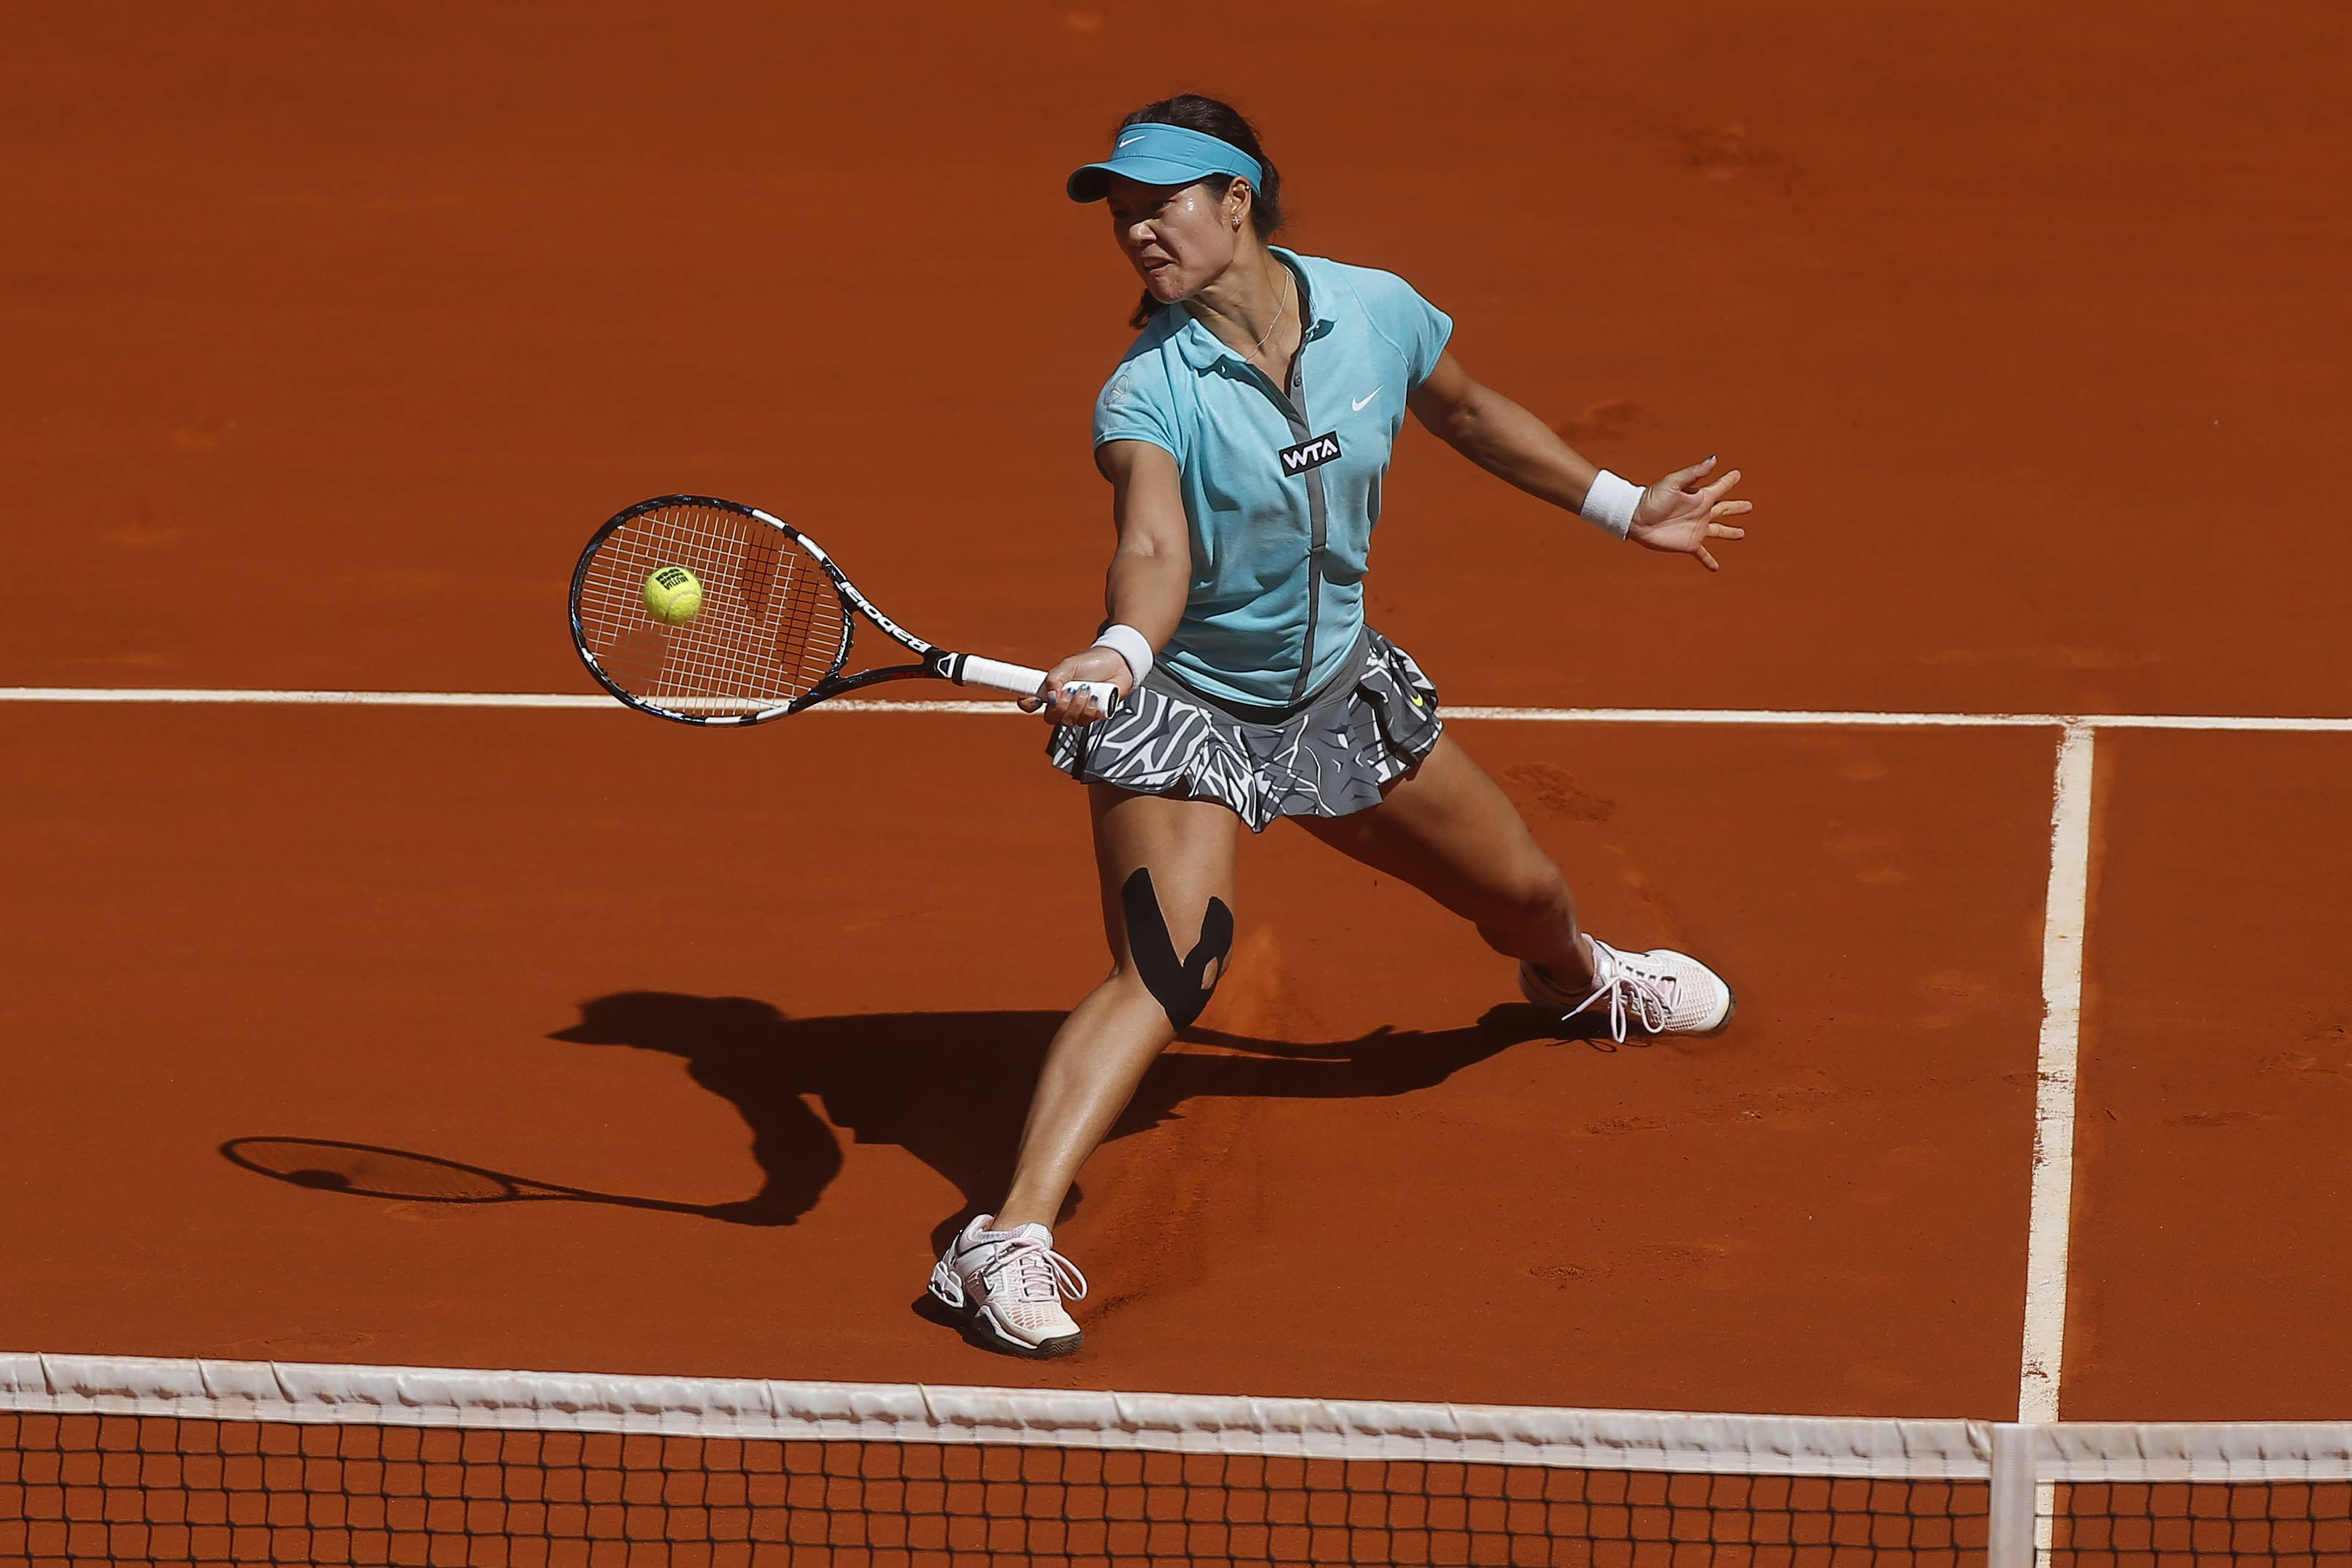 Li Na from China returns the ball during a Madrid Open tennis tournament match against Jie Zheng from China, in Madrid, Spain, Tuesday, May 6, 2014.